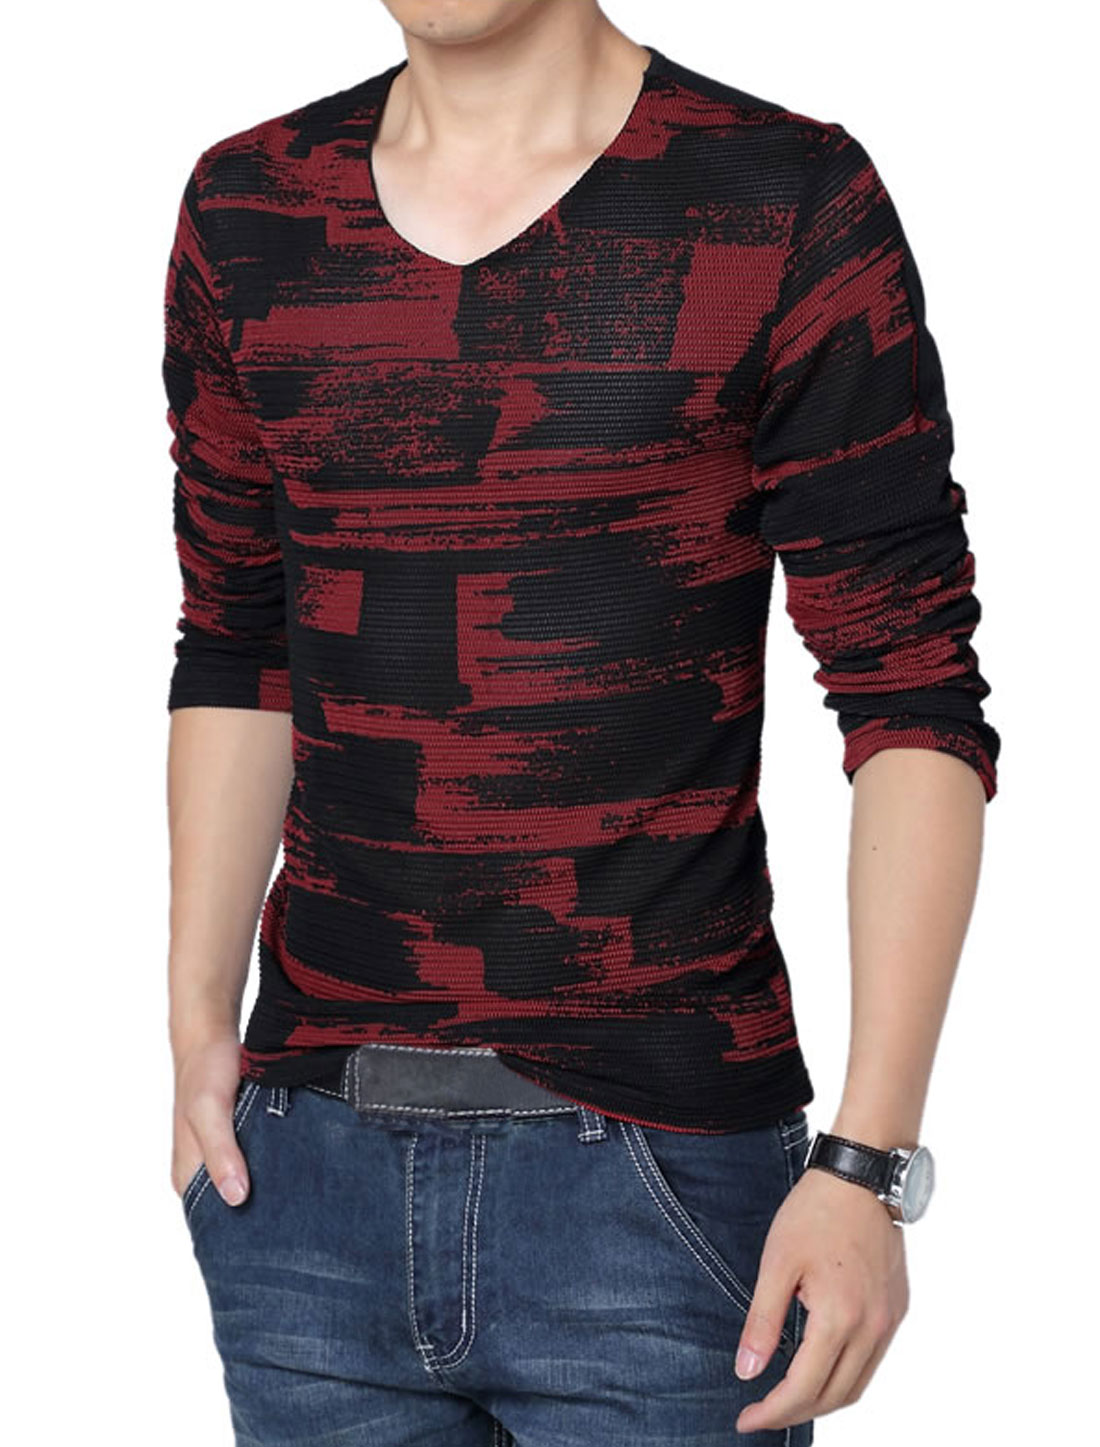 Novelty Prints Panel Pullover Casual Shirt for Men Red Black L